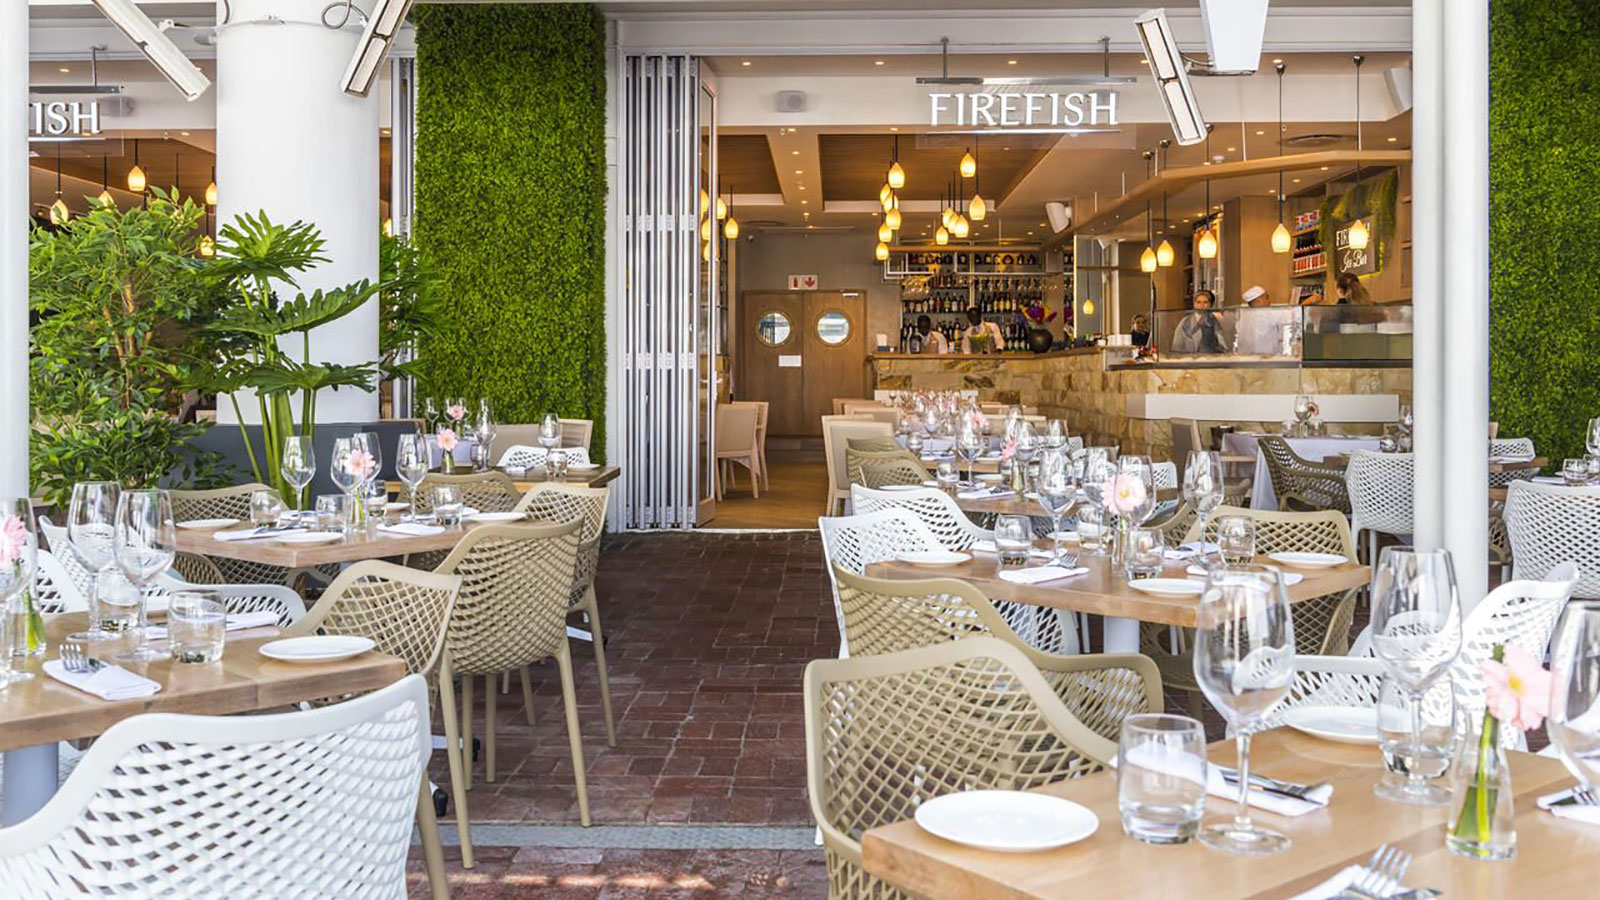 FIRE FISH RESTAURANT, CAPE TOWN